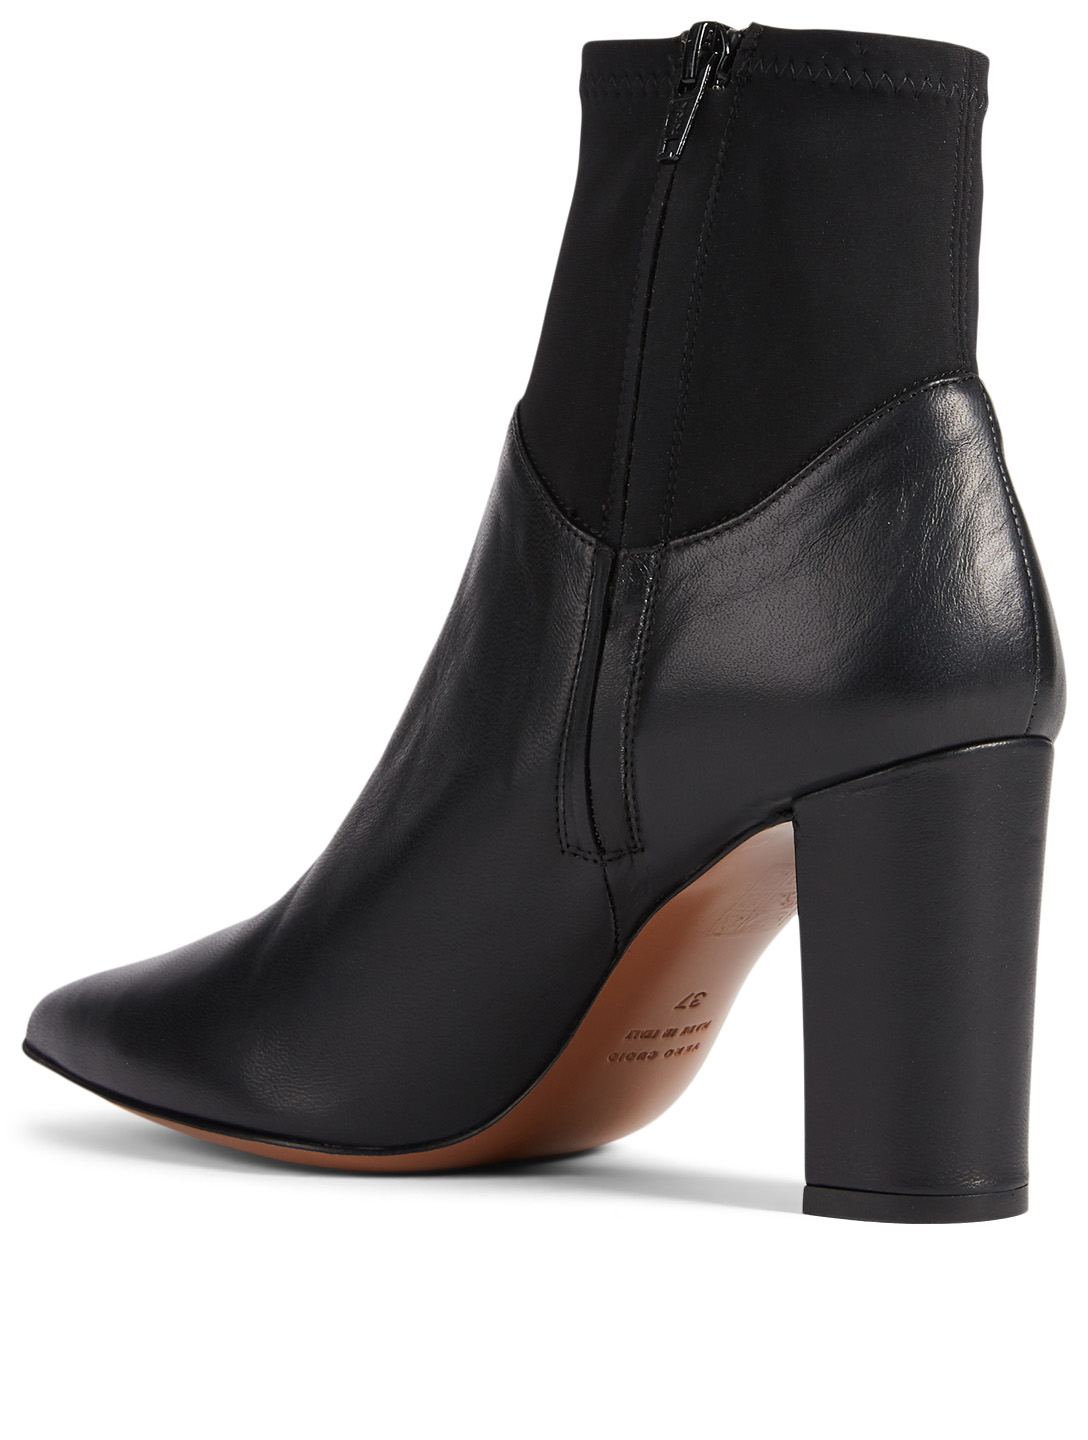 ATP ATELIER Enna Leather Ankle Boots Women's Black